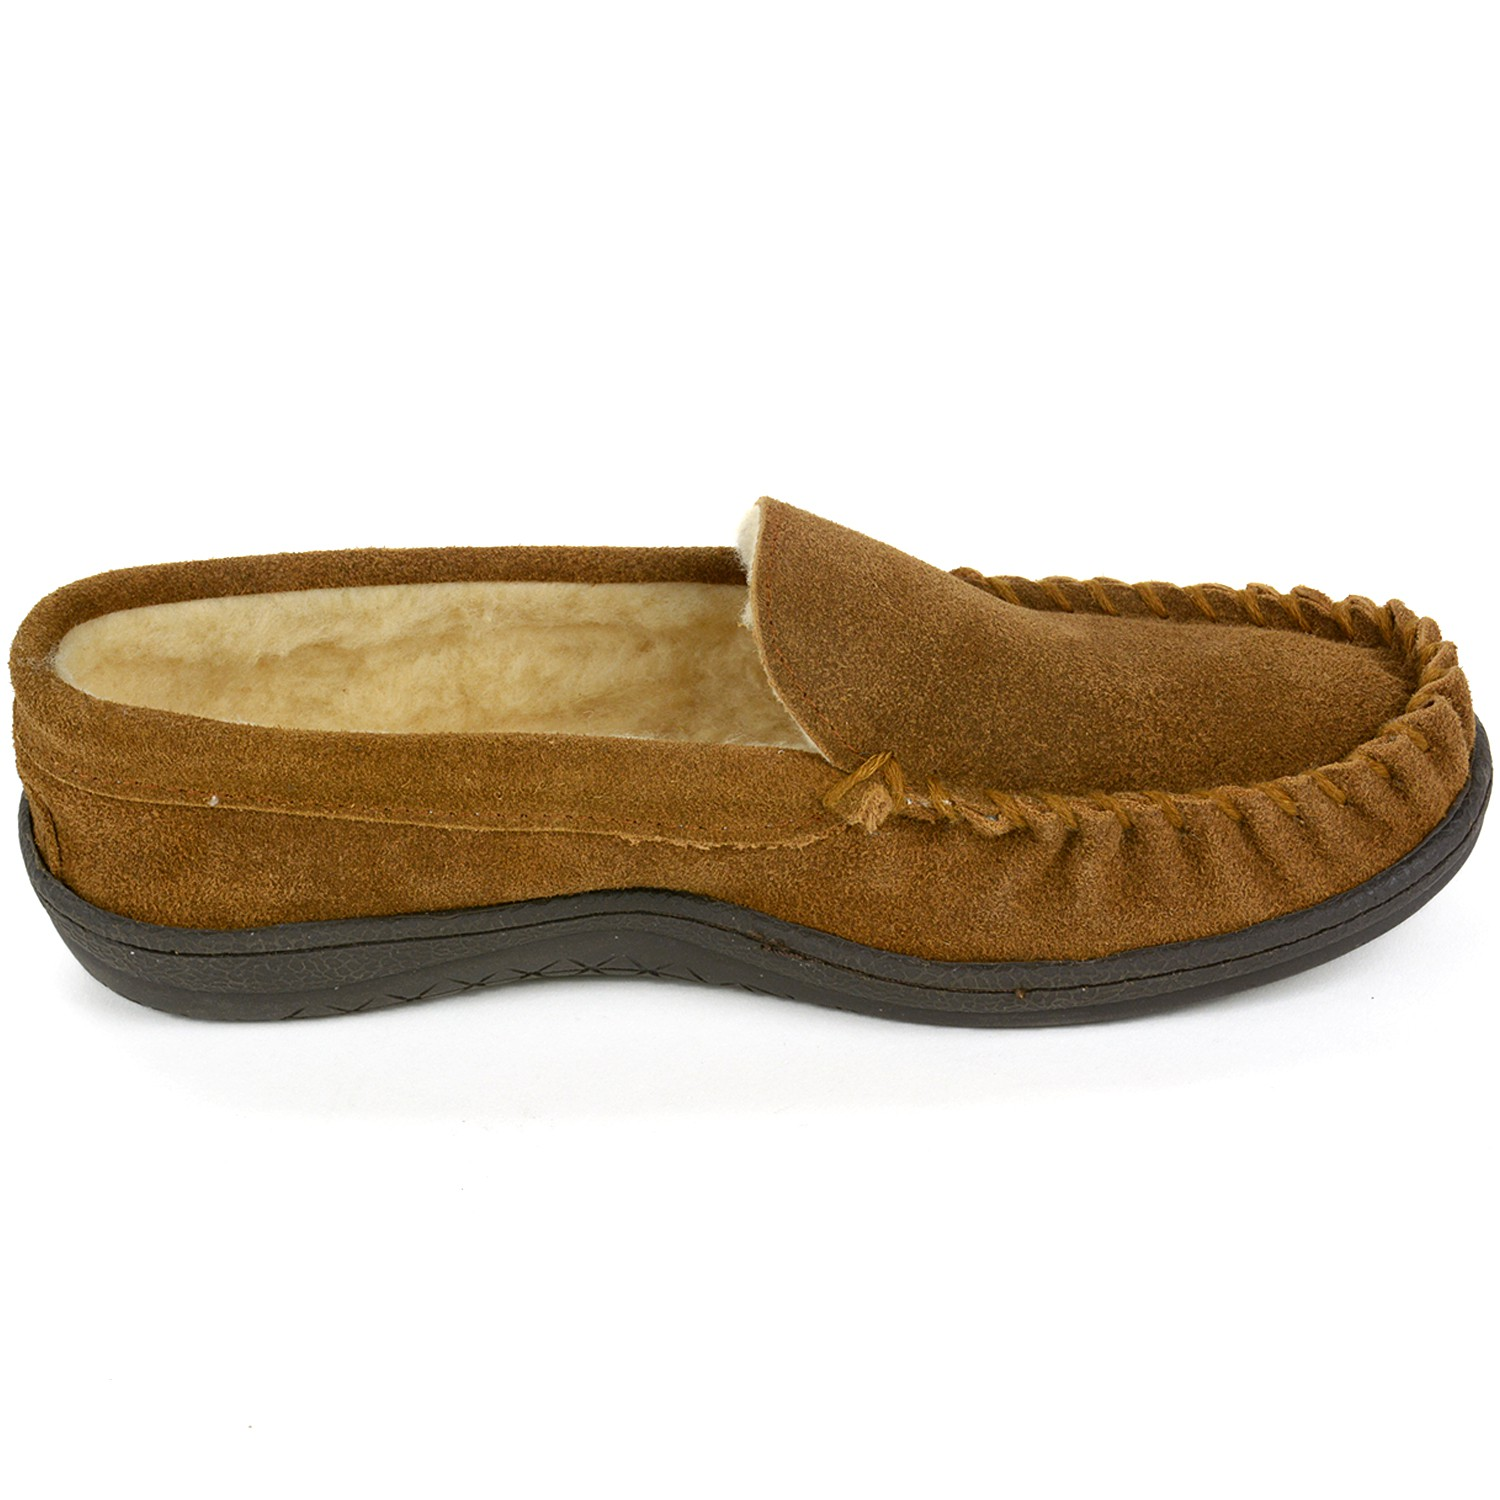 thumbnail 25 - Alpine-Swiss-Yukon-Mens-Suede-Shearling-Moccasin-Slippers-Moc-Toe-Slip-On-Shoes